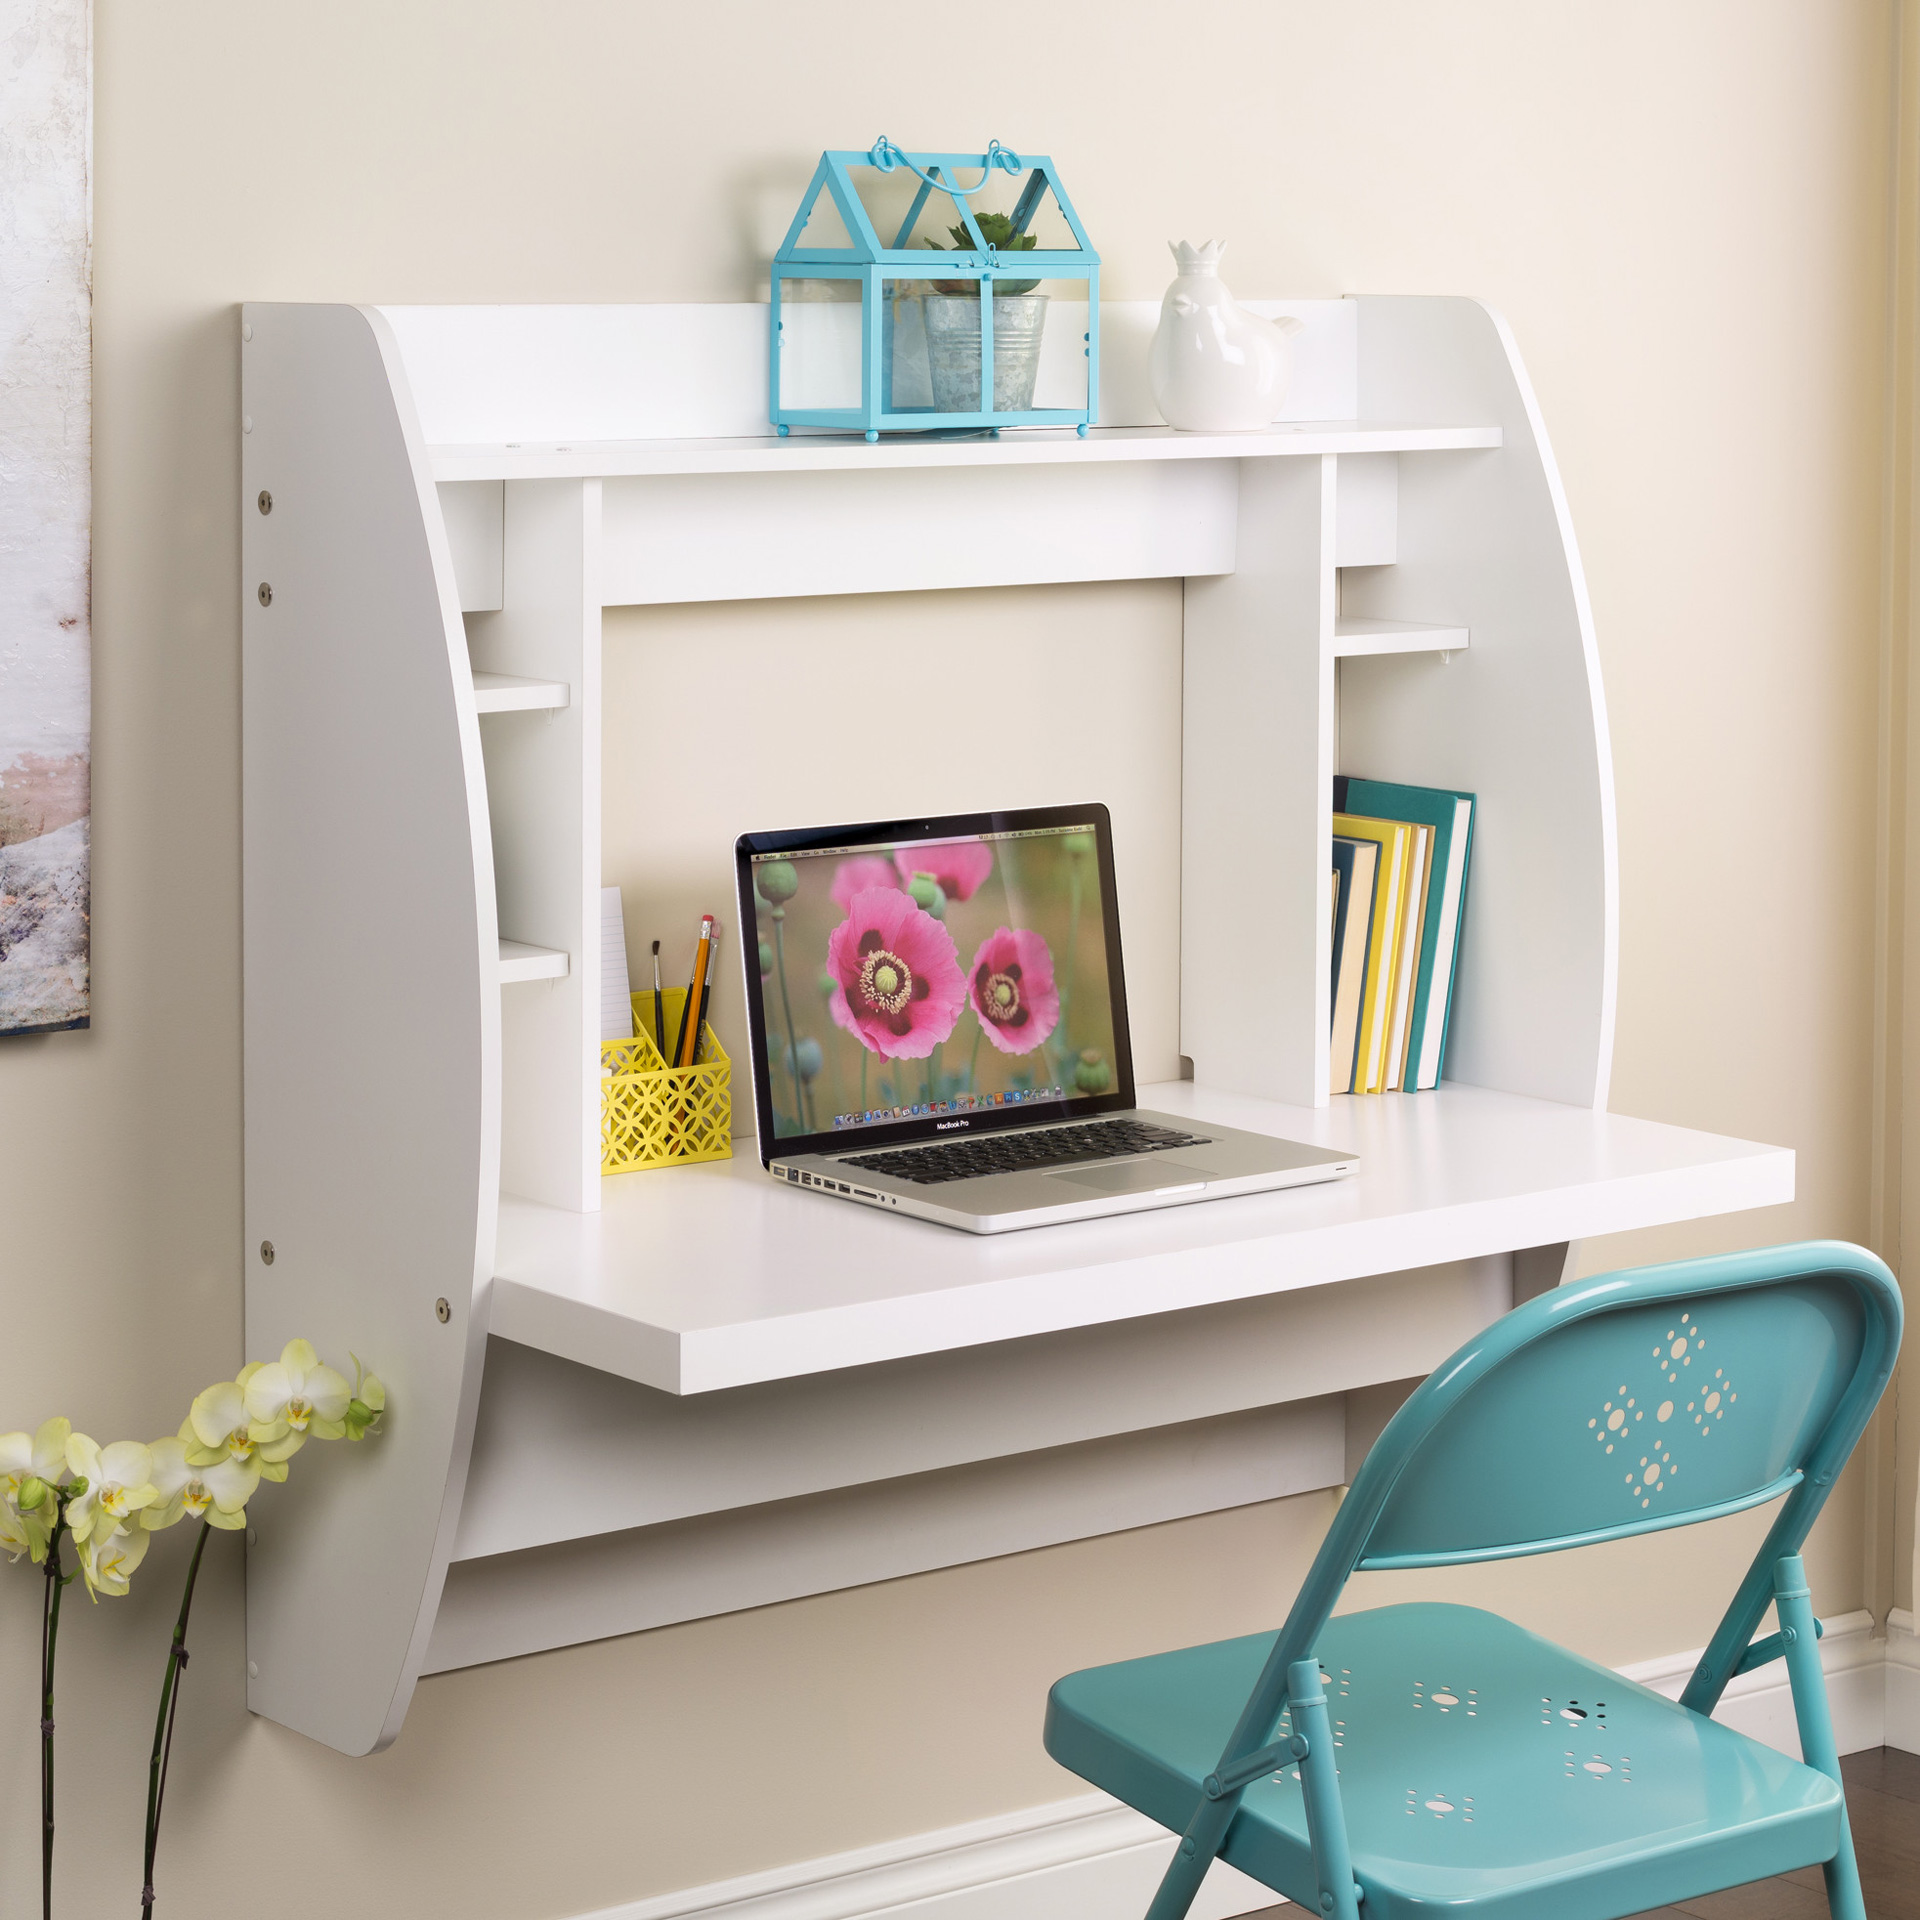 Why wallmounted desks are perfect for small spaces